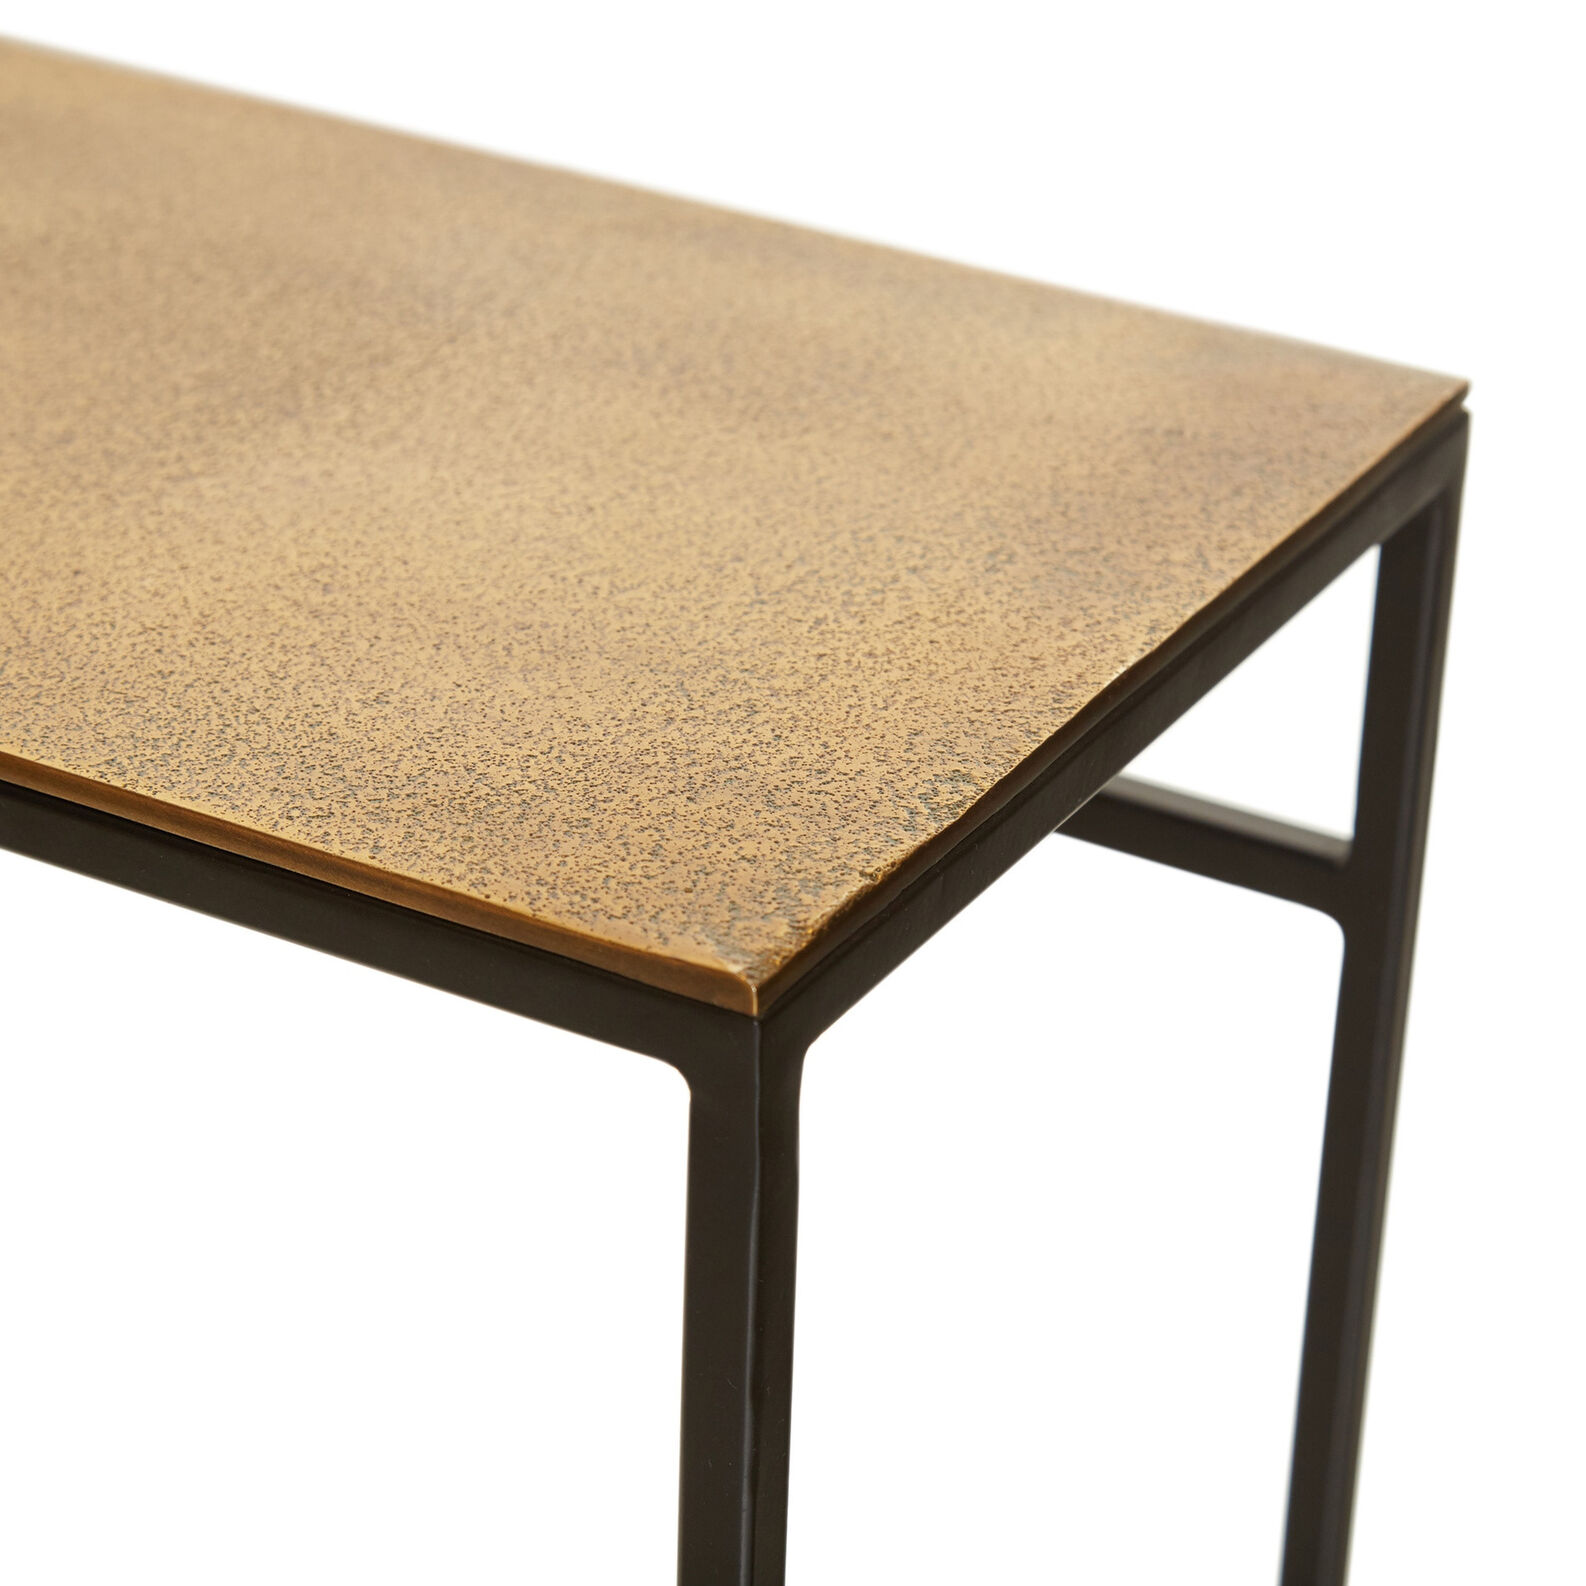 Consuelo console table in metal and brass